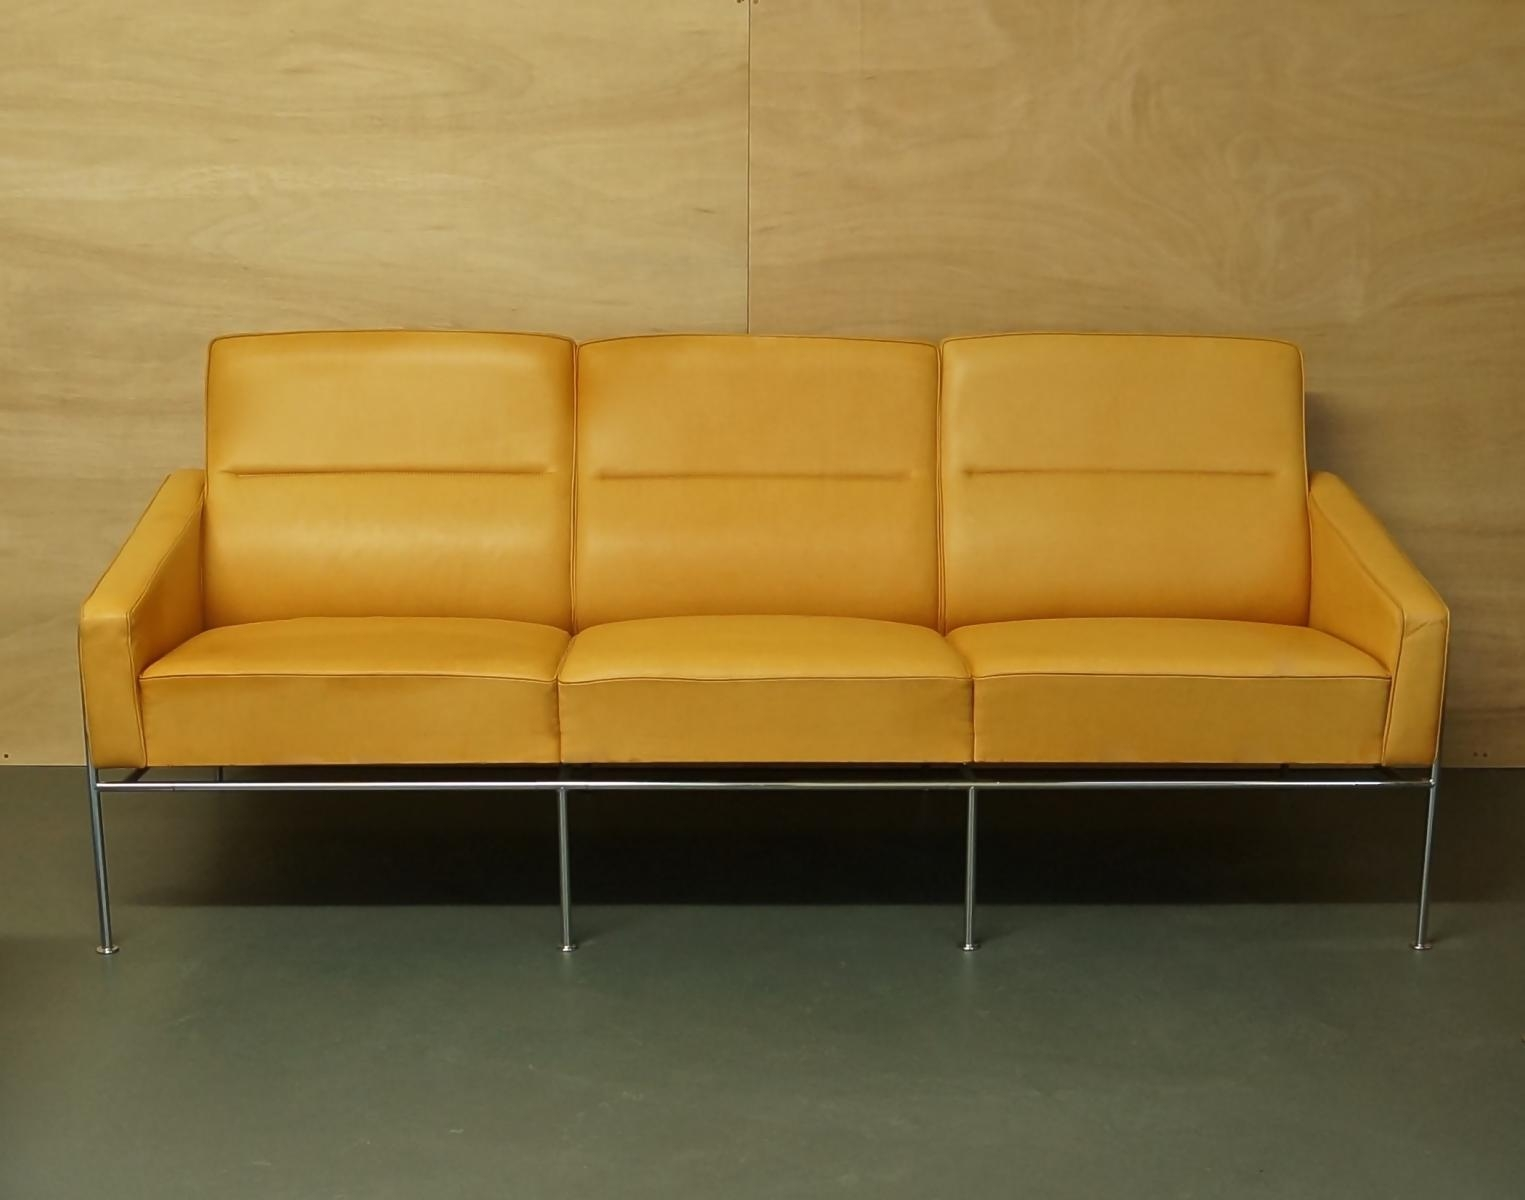 Vintage Light Tan Leather Series 3303 Sofaarne Jacobsen For Throughout Light Tan Leather Sofas (View 9 of 20)